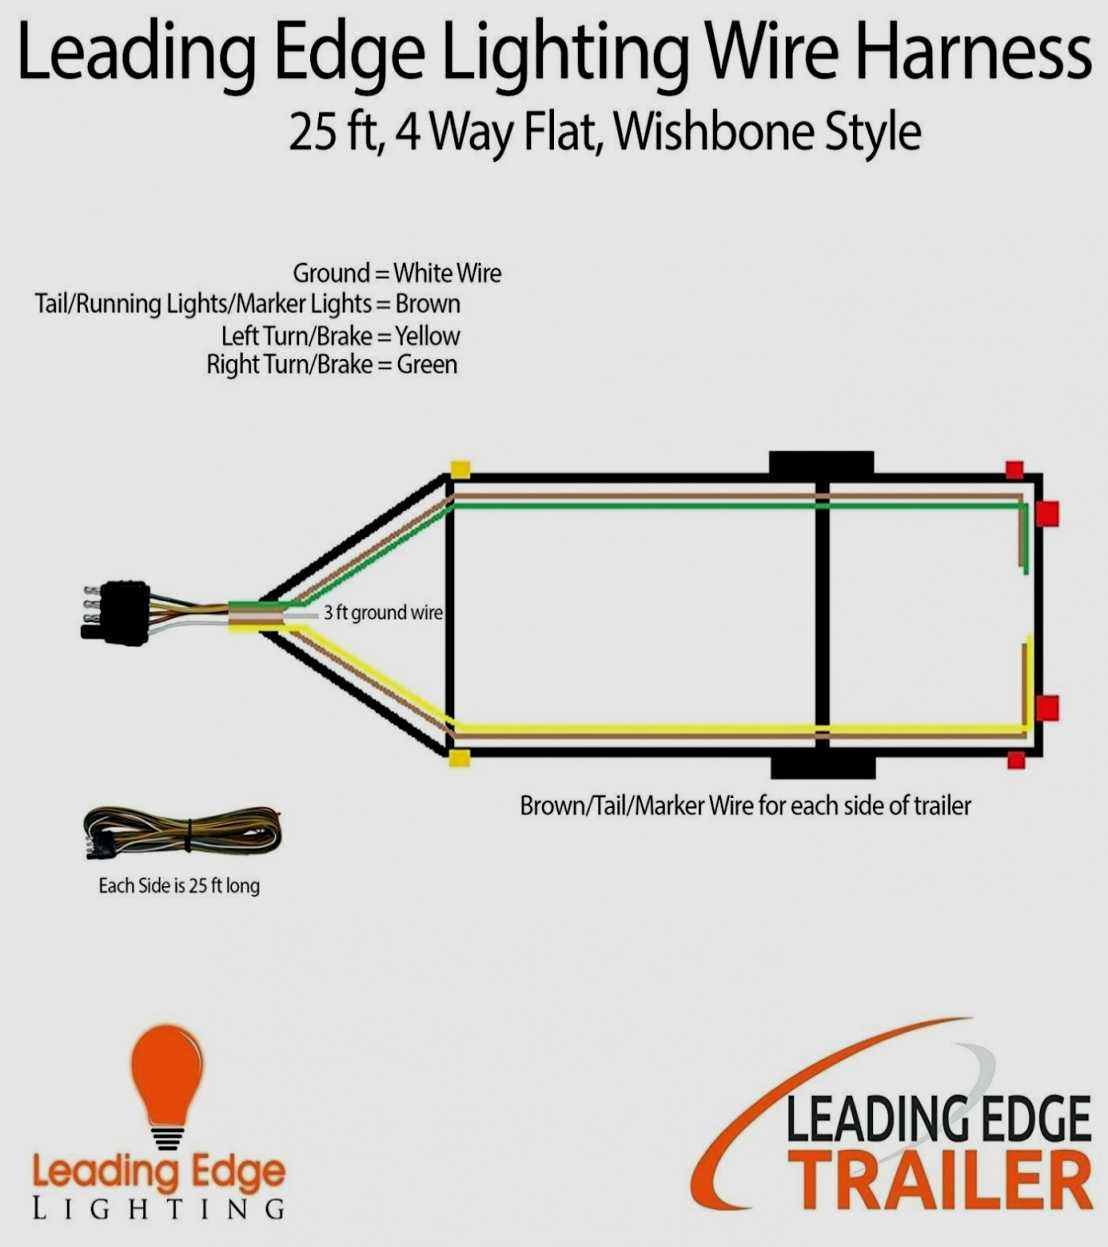 Wiring 7 Way Diagram Curt55774 | Wiring Diagram - Curt 7 Way Trailer Wiring Diagram